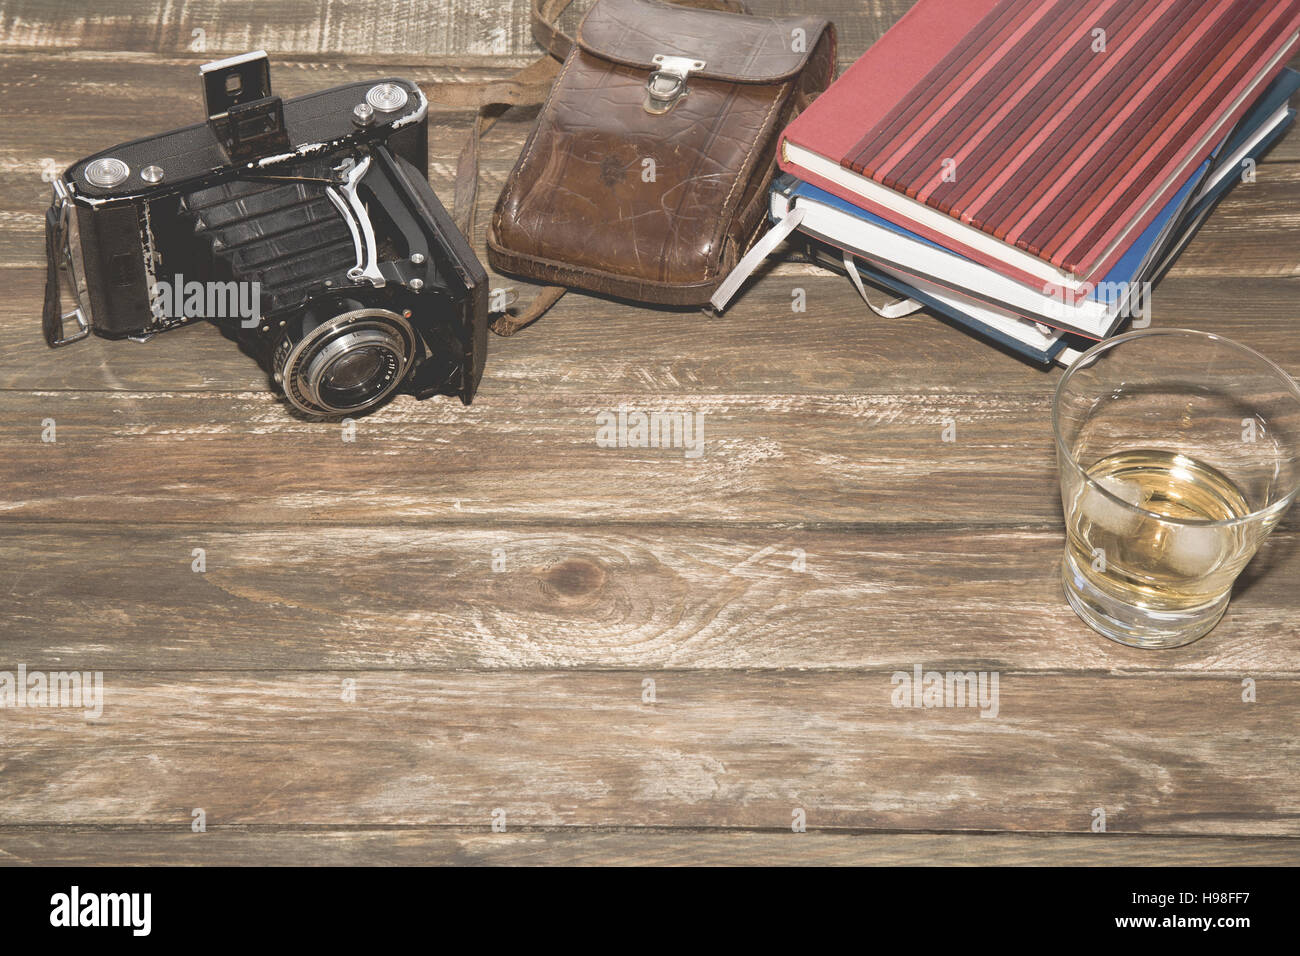 Old photocamera with leather case, notebooks on vintage wood background - Stock Image